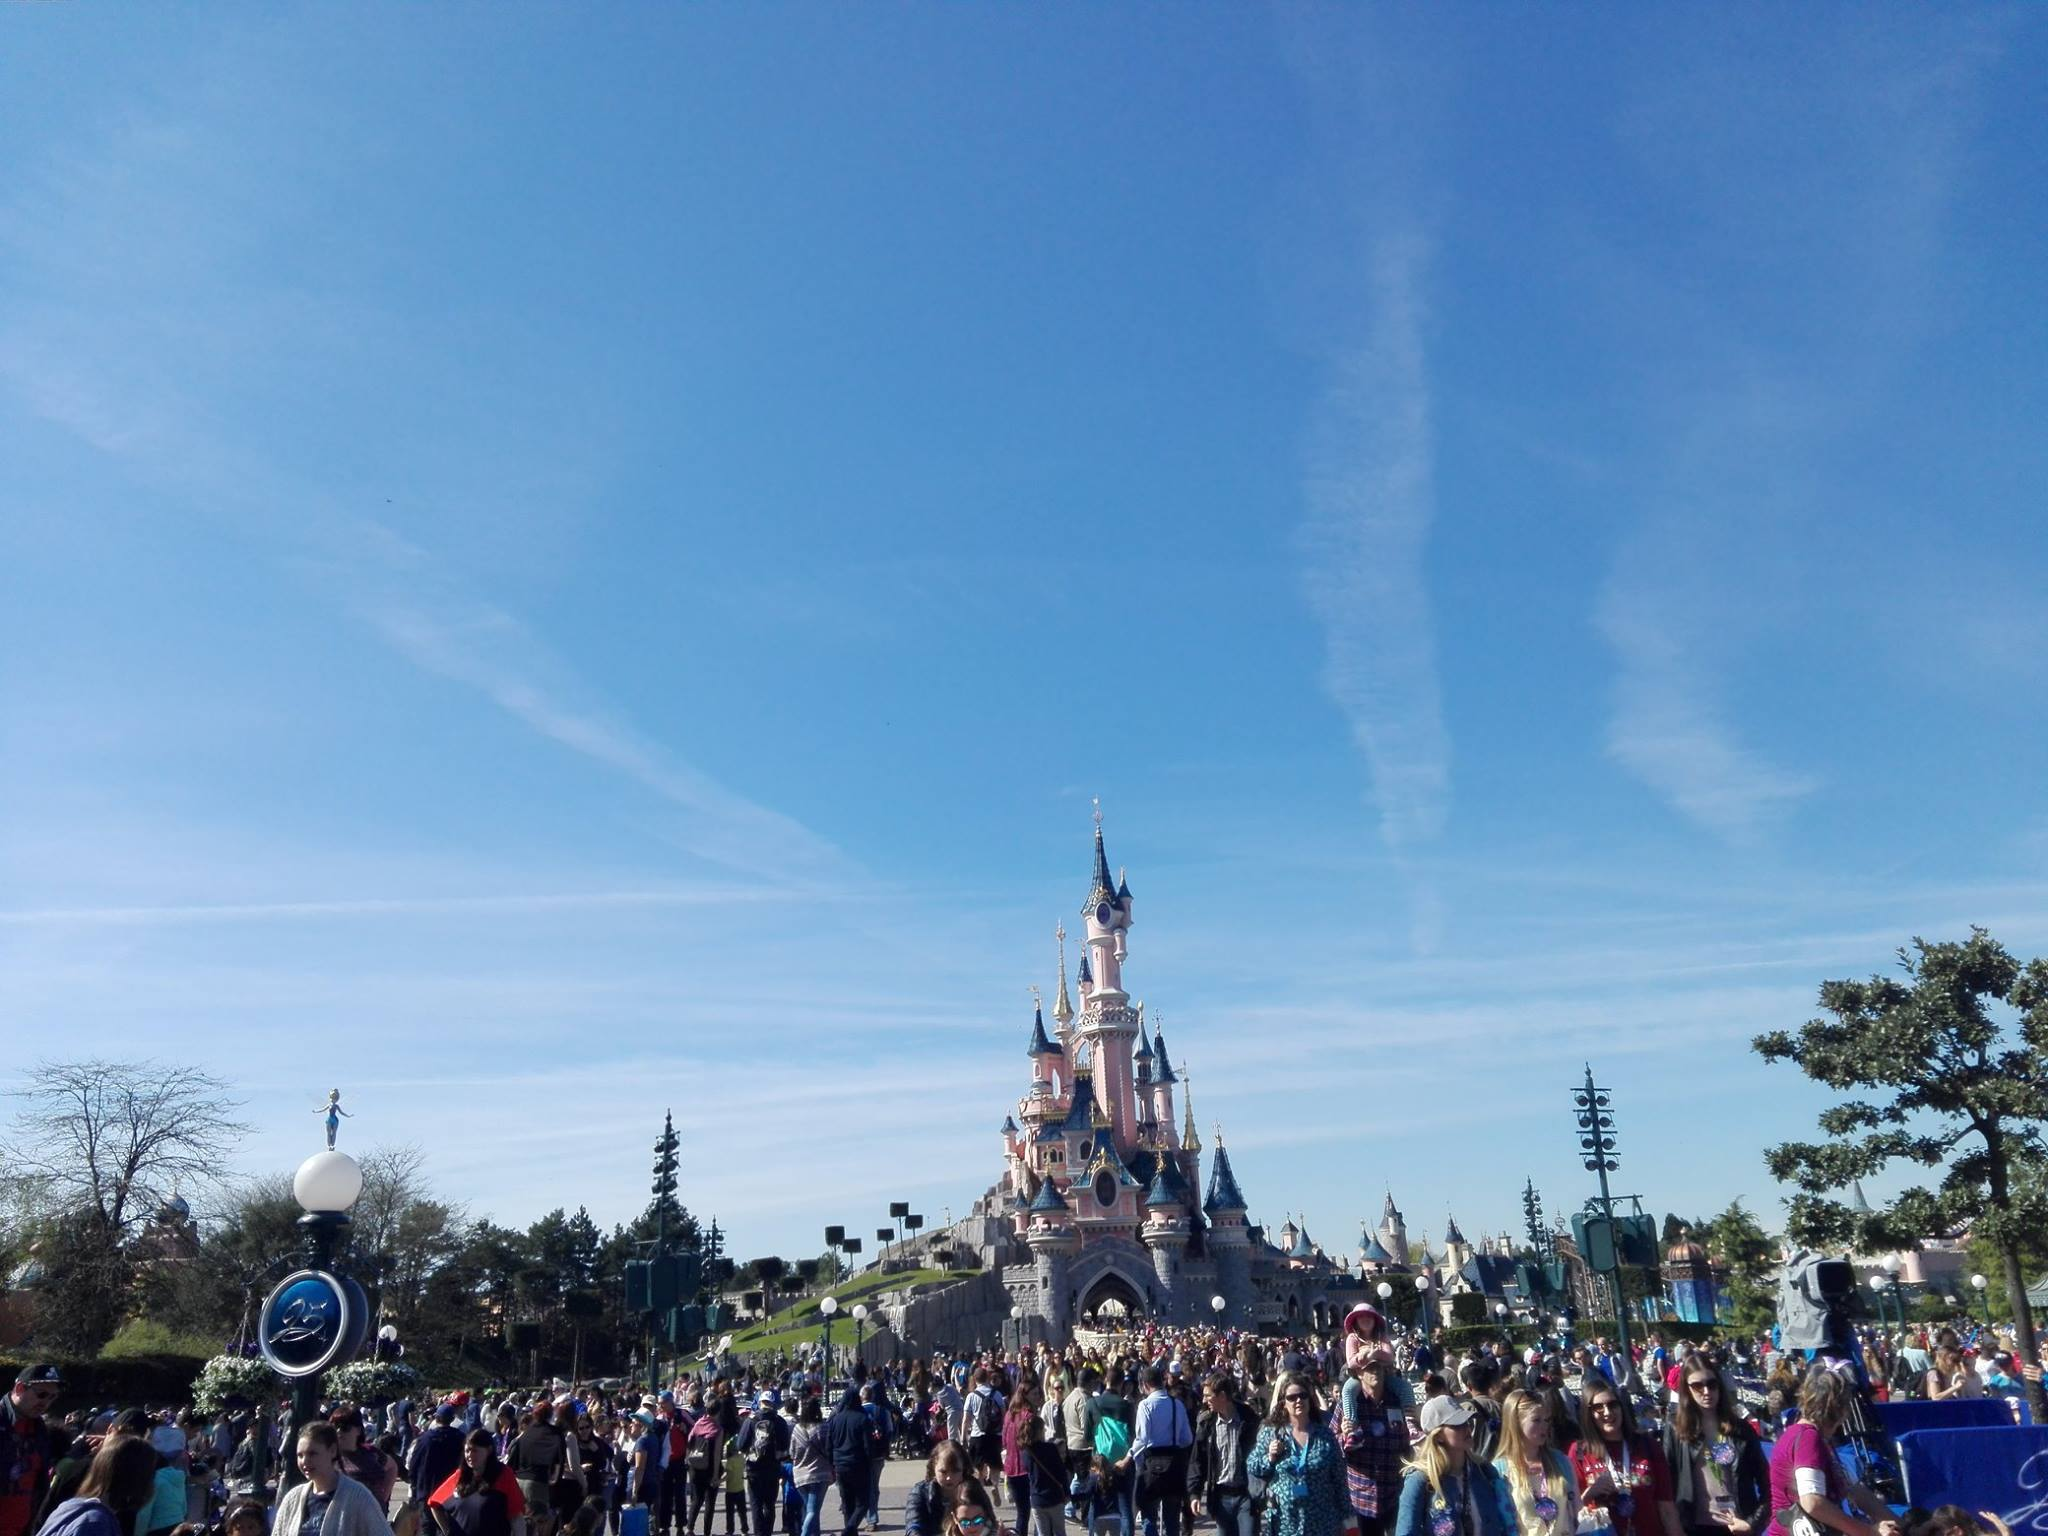 25 ans de Disneyland Paris - 12 avril 2017